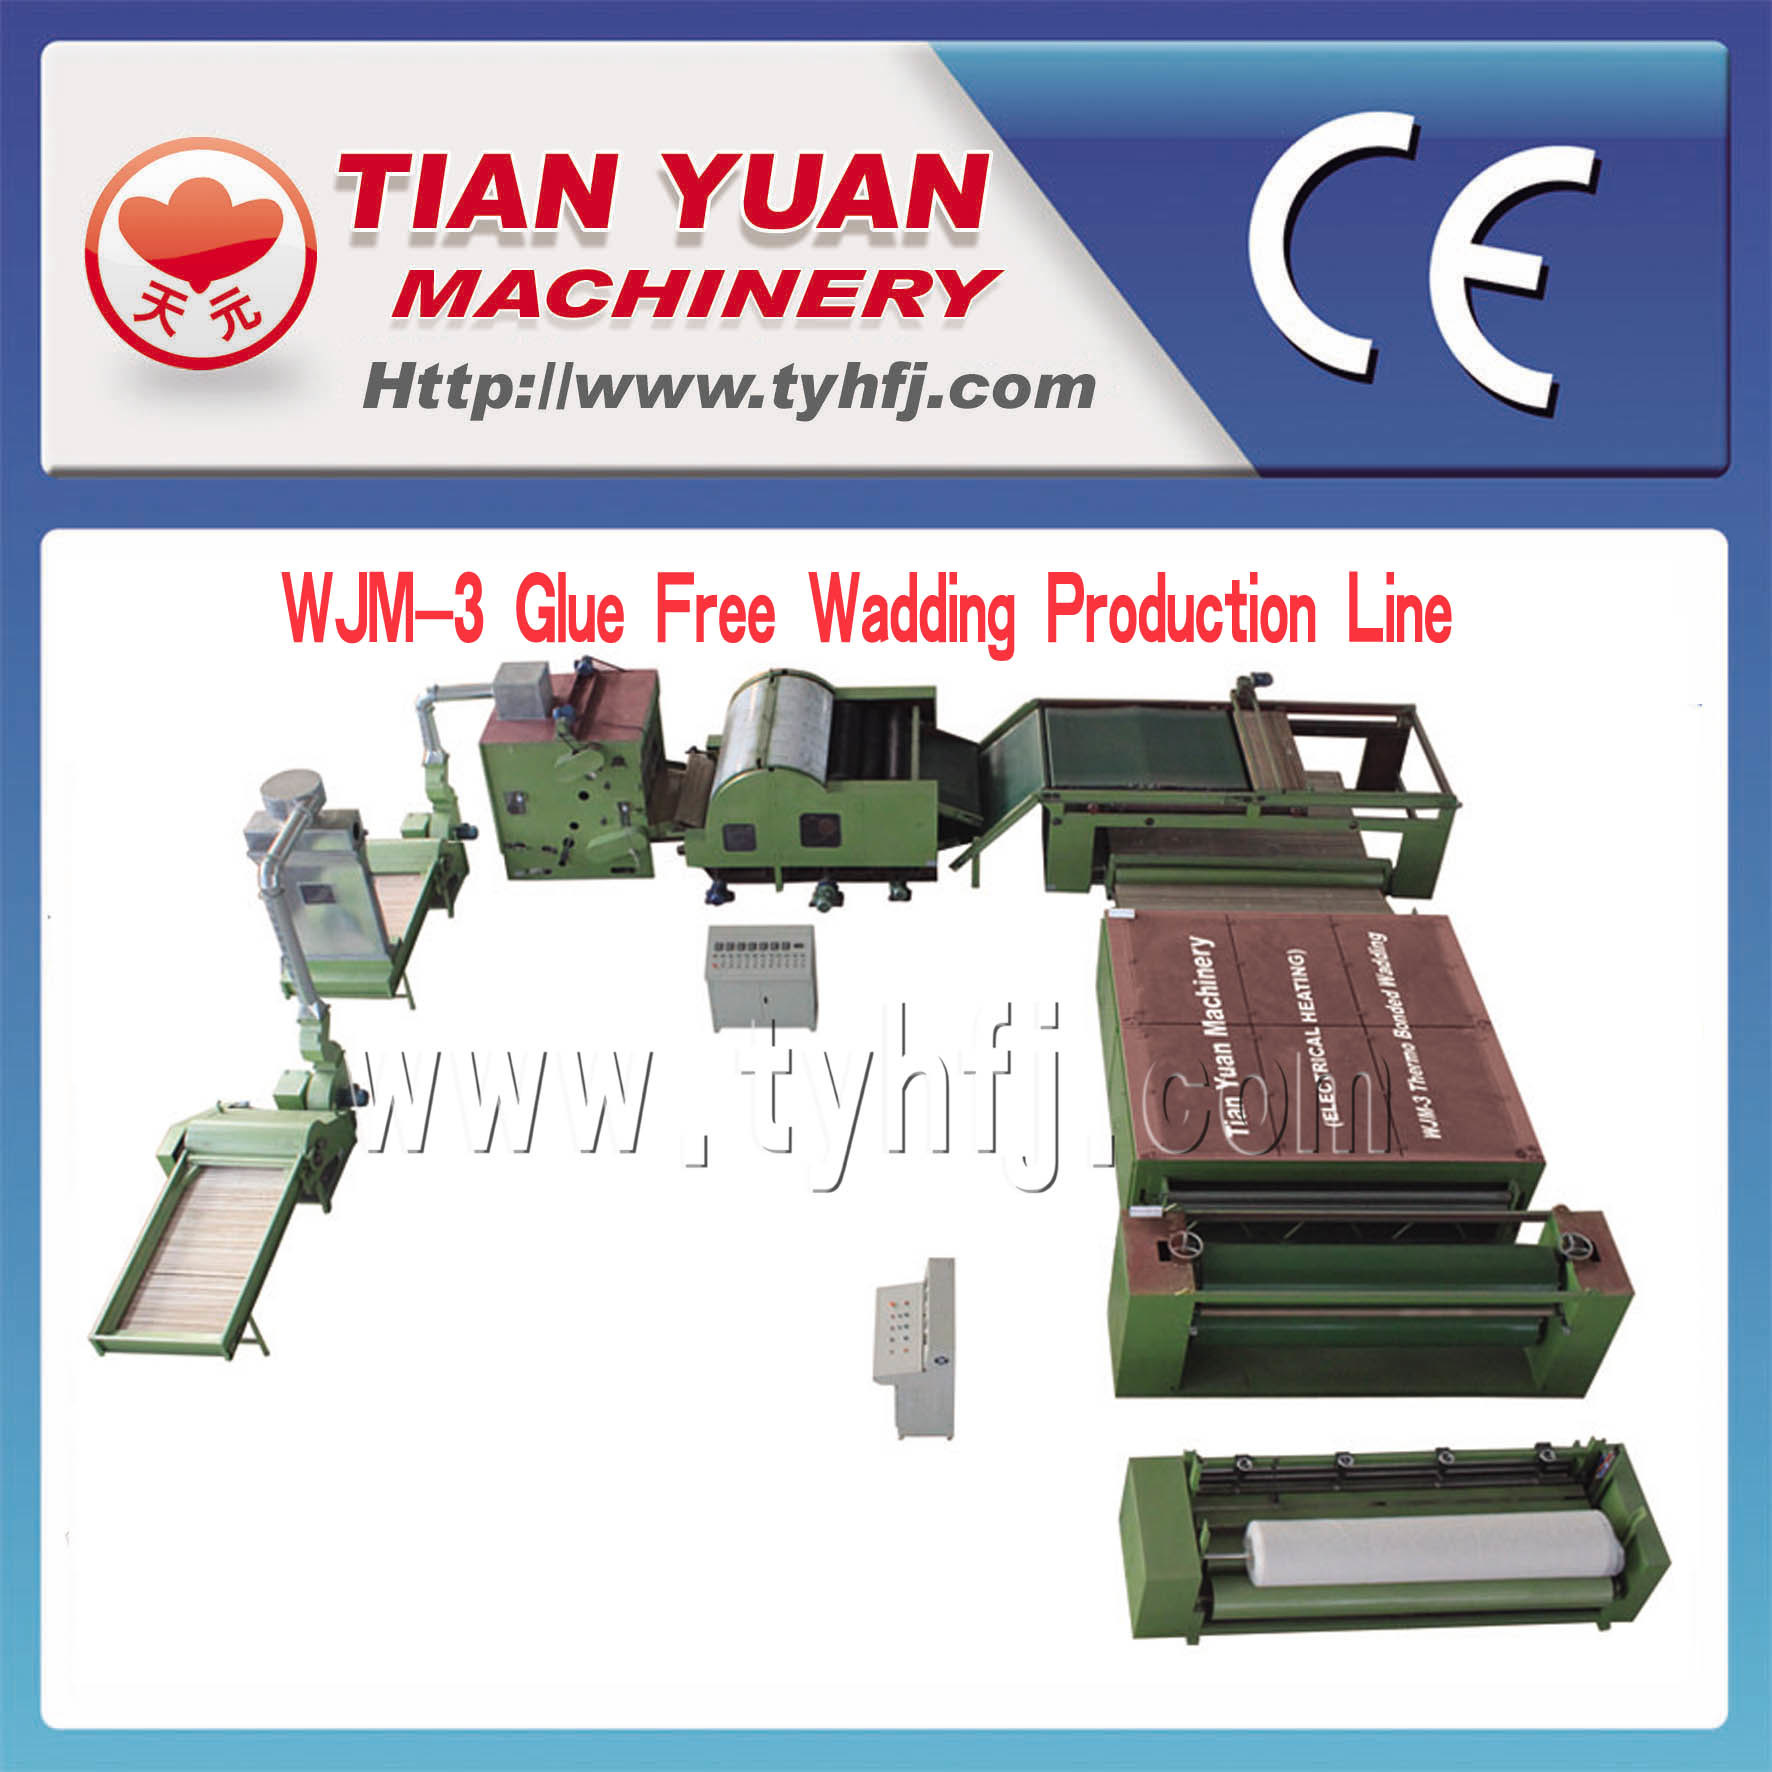 Nonwoven Thermo Bonded Wadding Production Line